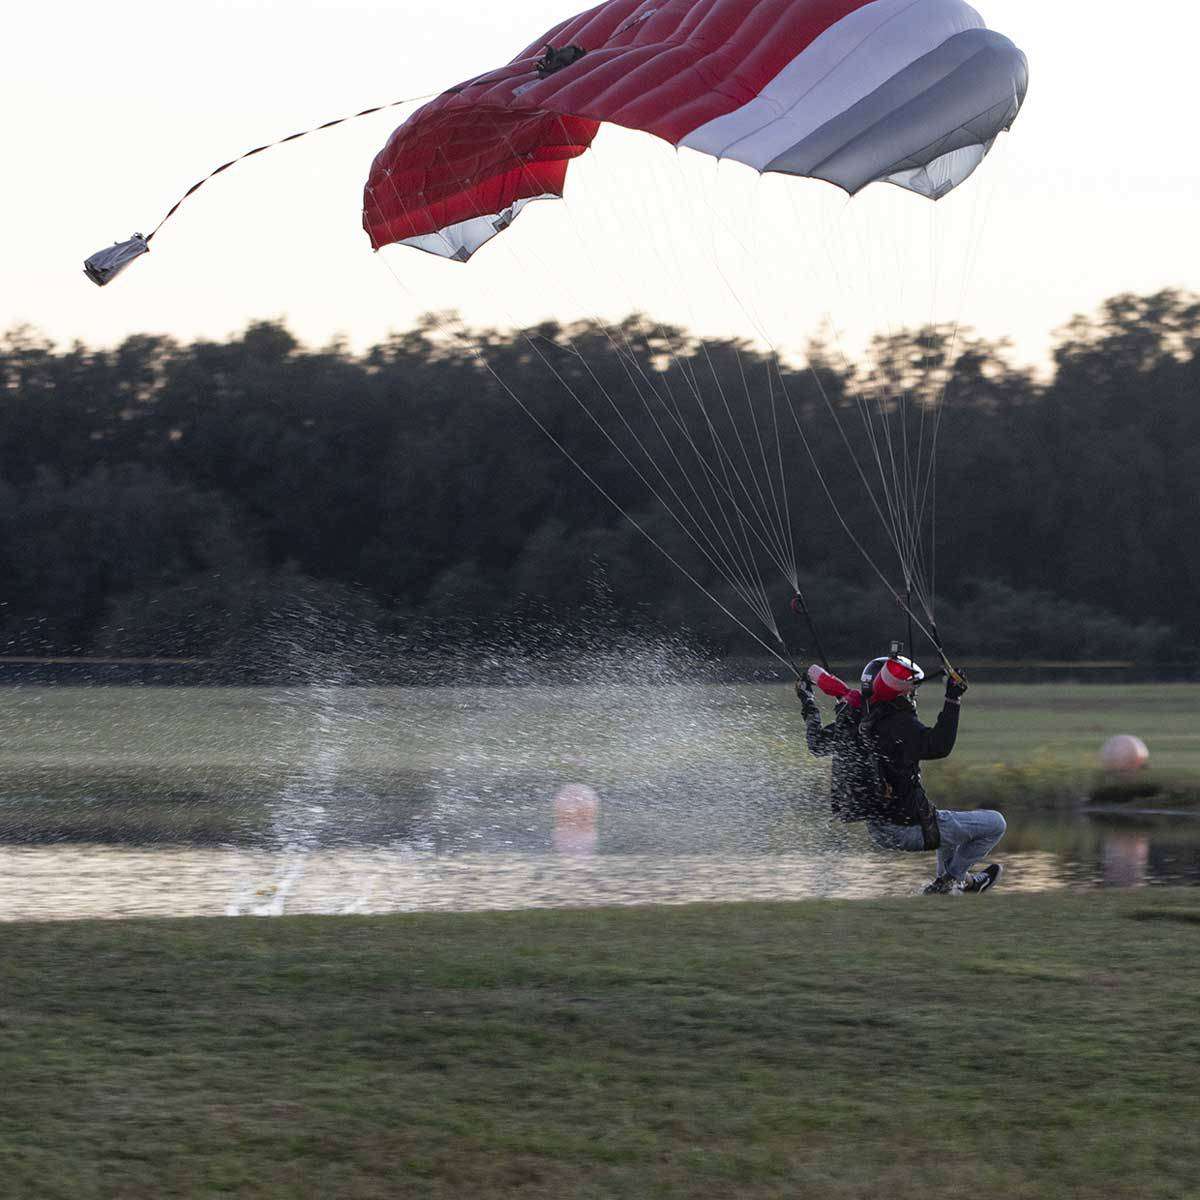 Experienced skydiver swooping in the water.